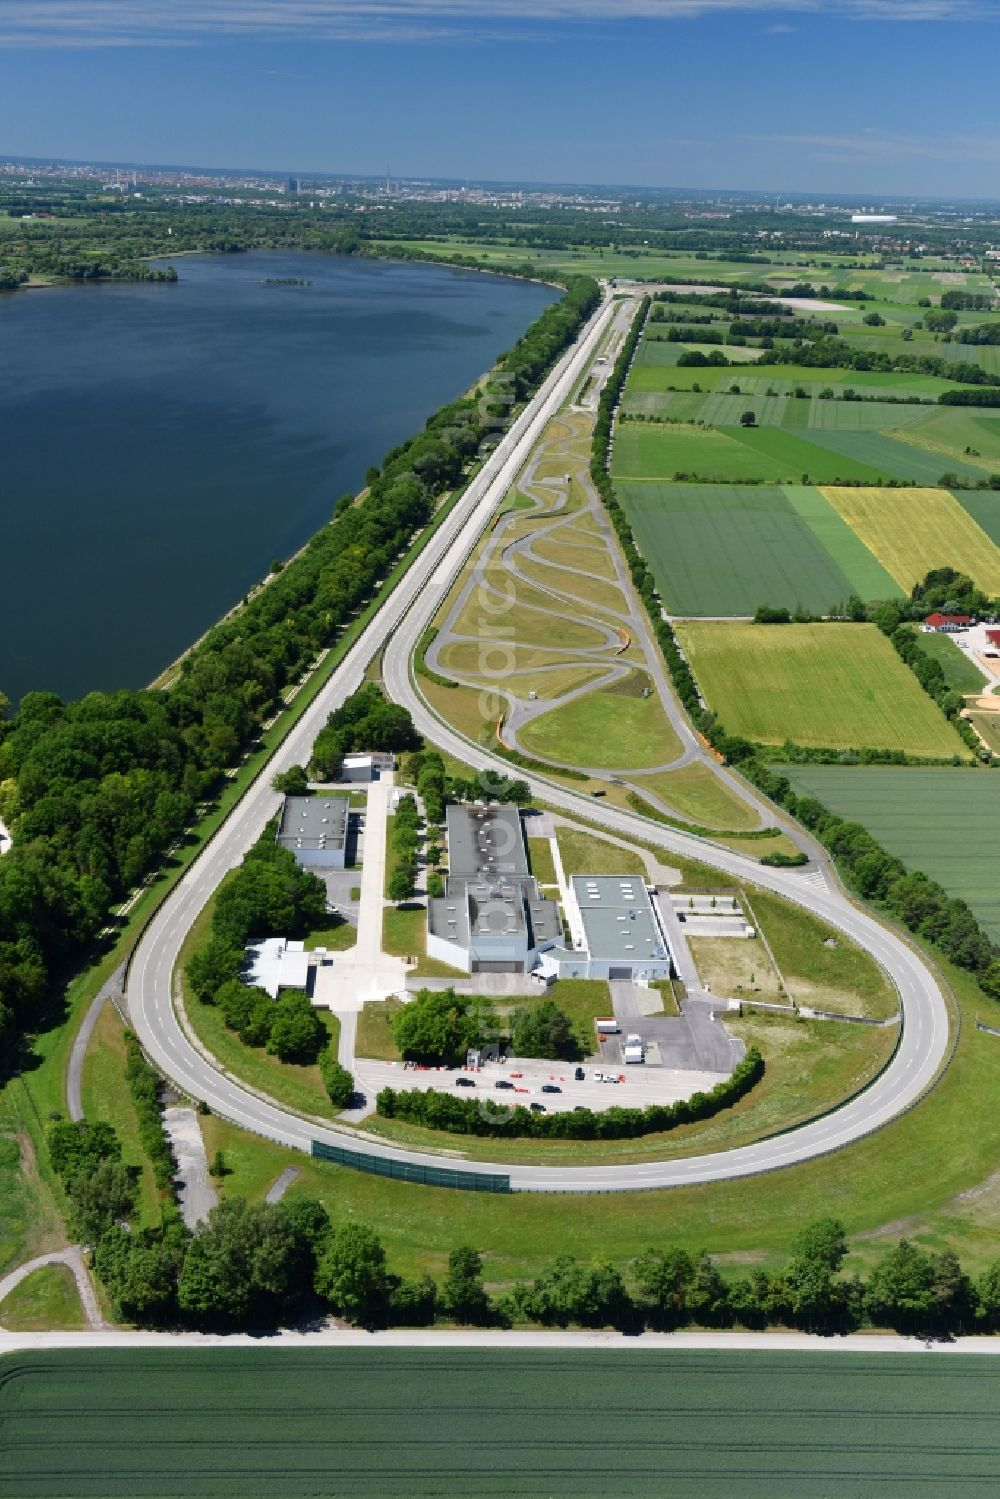 Aerial Image Aschheim Test Track And Practise Place On The Bmw Measuring Area In